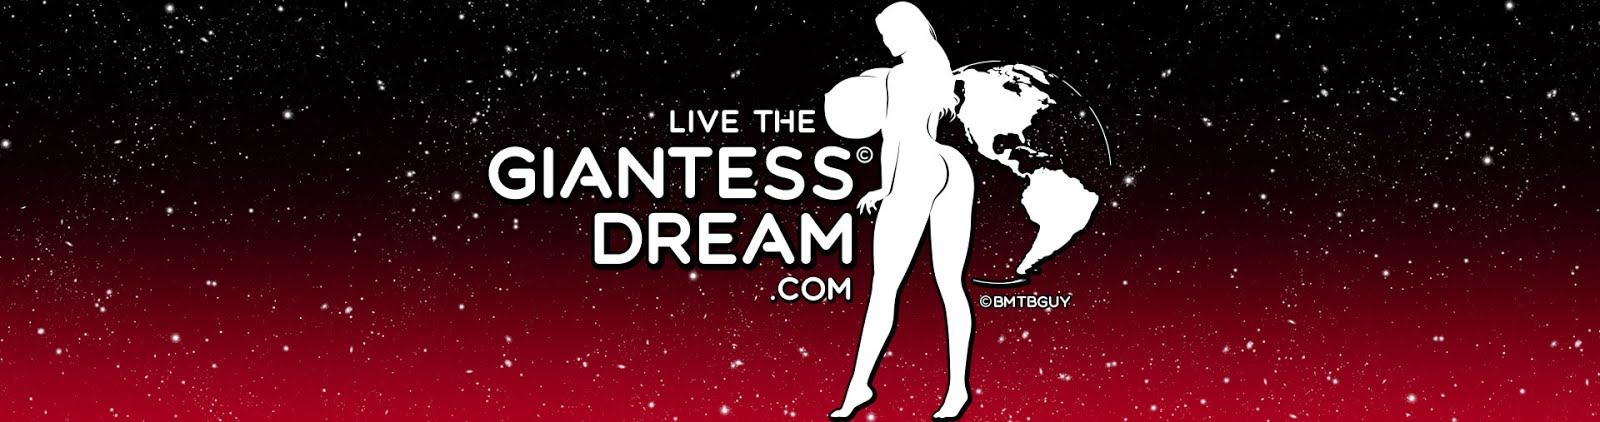 Live the Giantess Dream